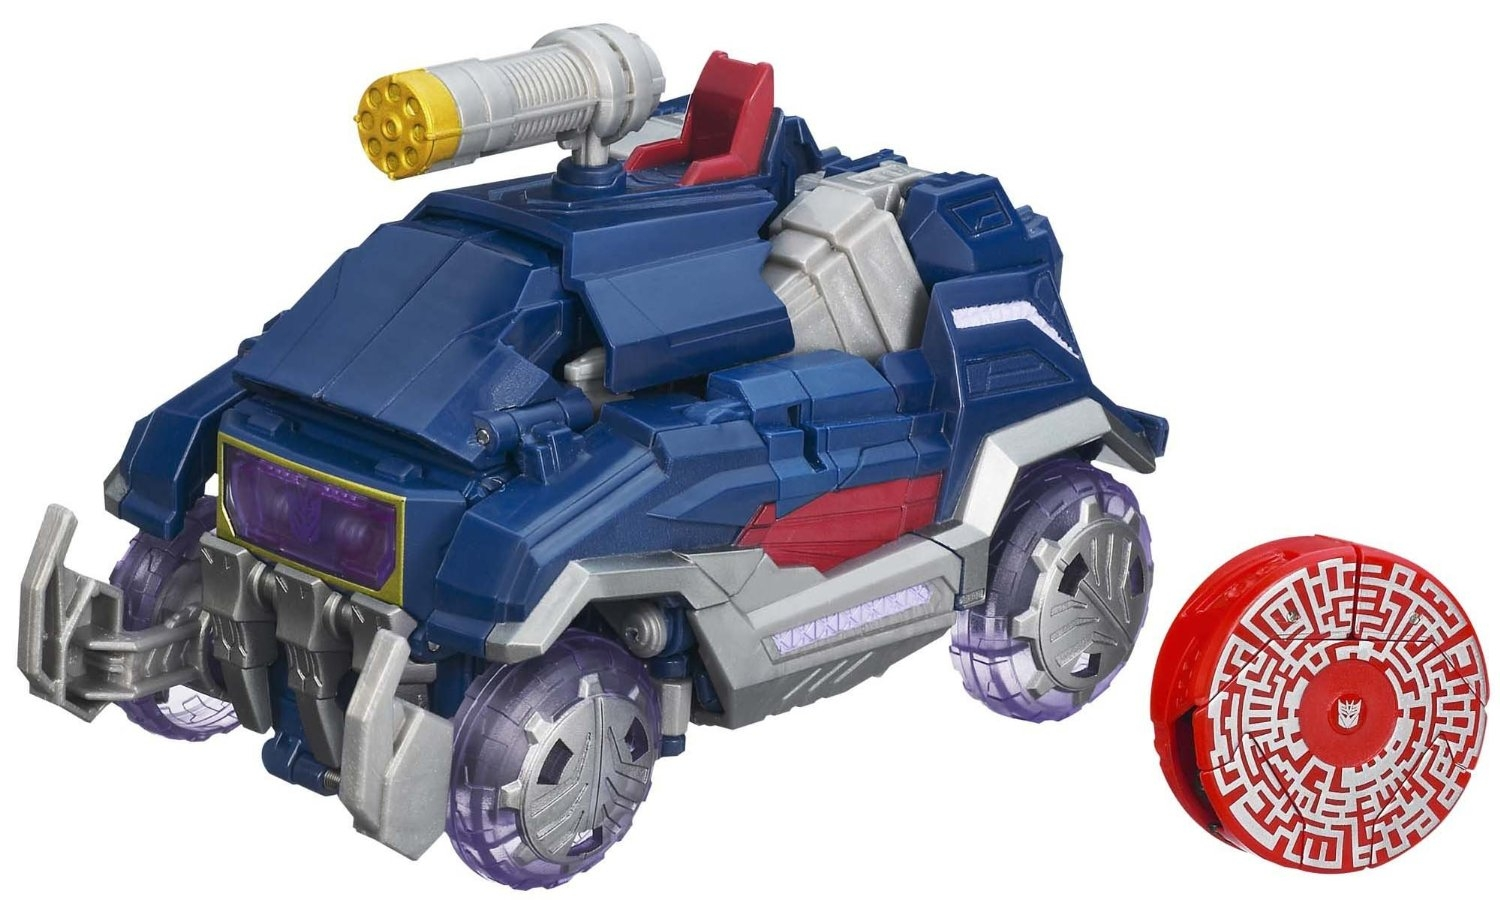 Soundwave focsoundwavevehicle